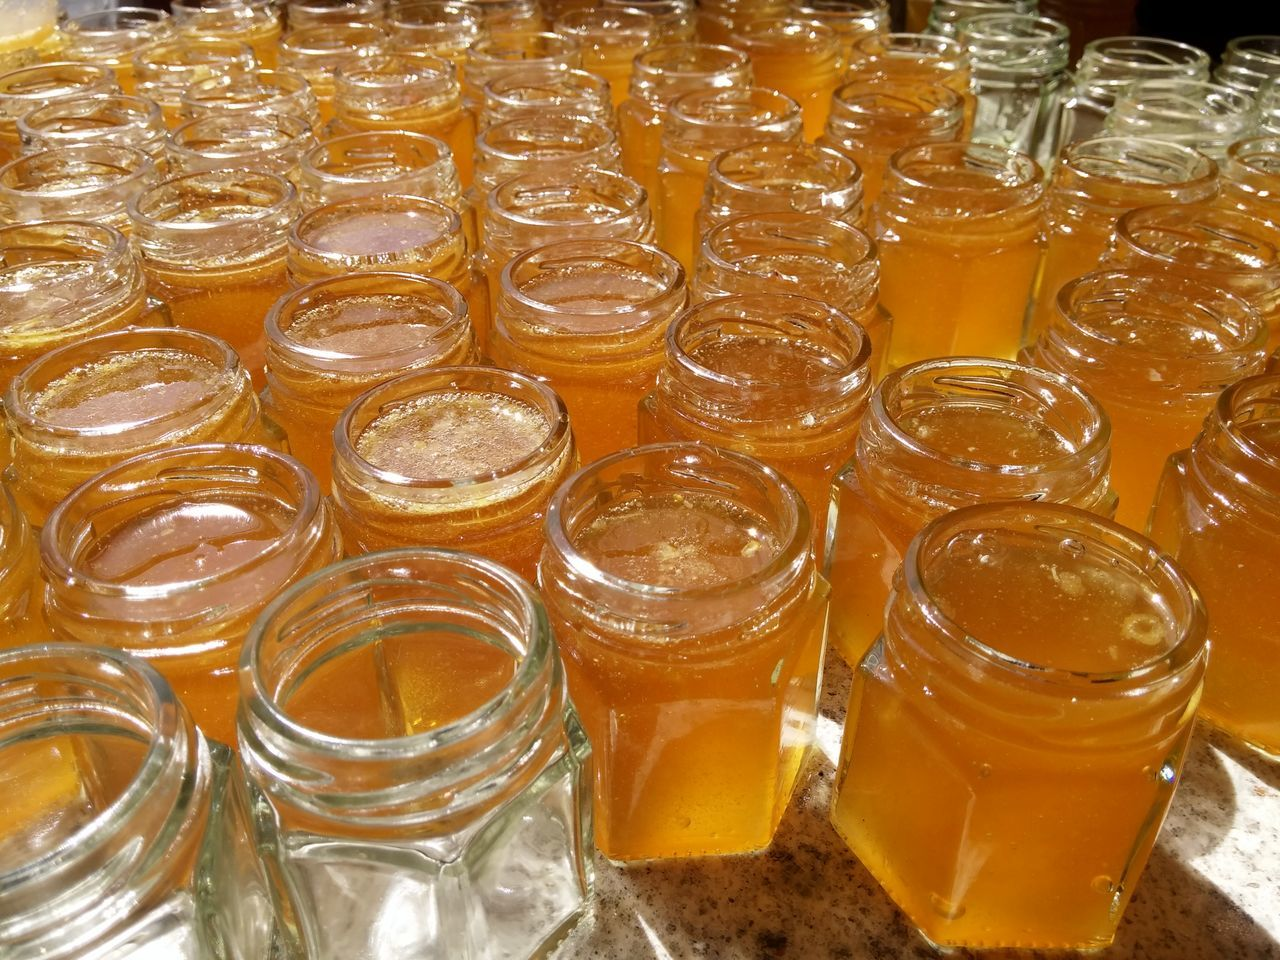 Tedium. Food And Drink Freshness Close-up Indoors  Honey Jars  Work Miele 45g jars filled with raw honey.